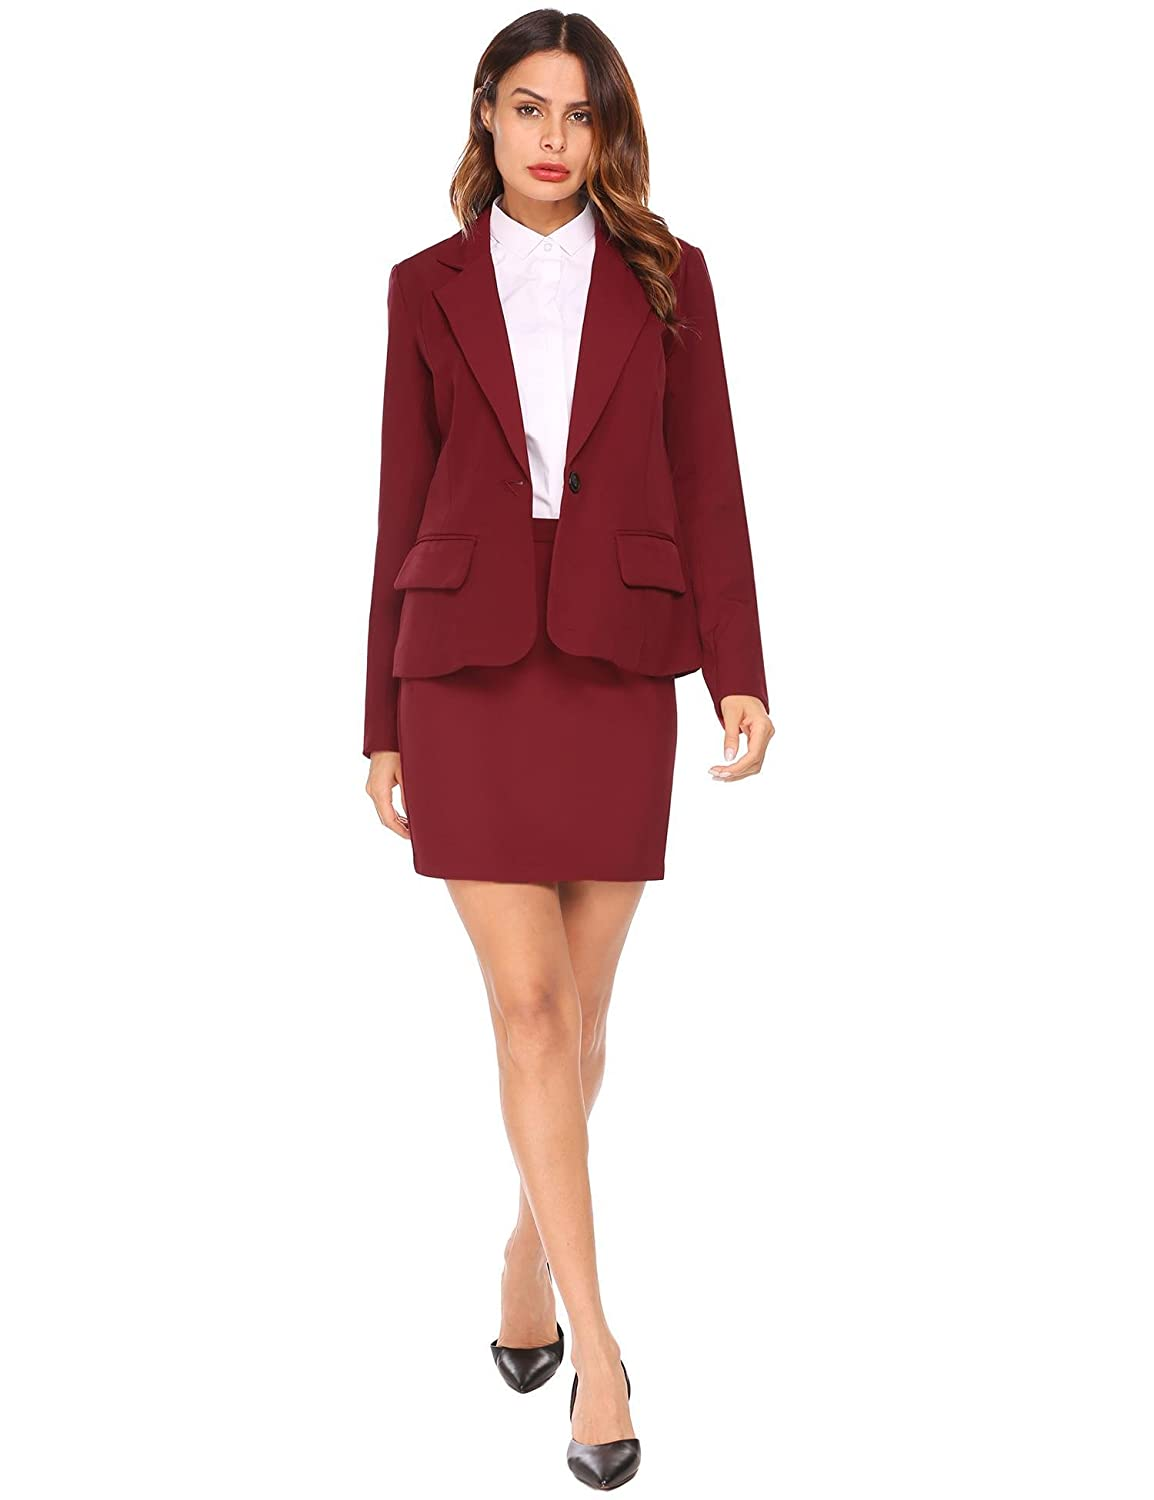 f73a2a9a53 Amazon.com  Burlady Women Business Suit Formal Casual Wear To Work Office  Blazer Dress  Clothing